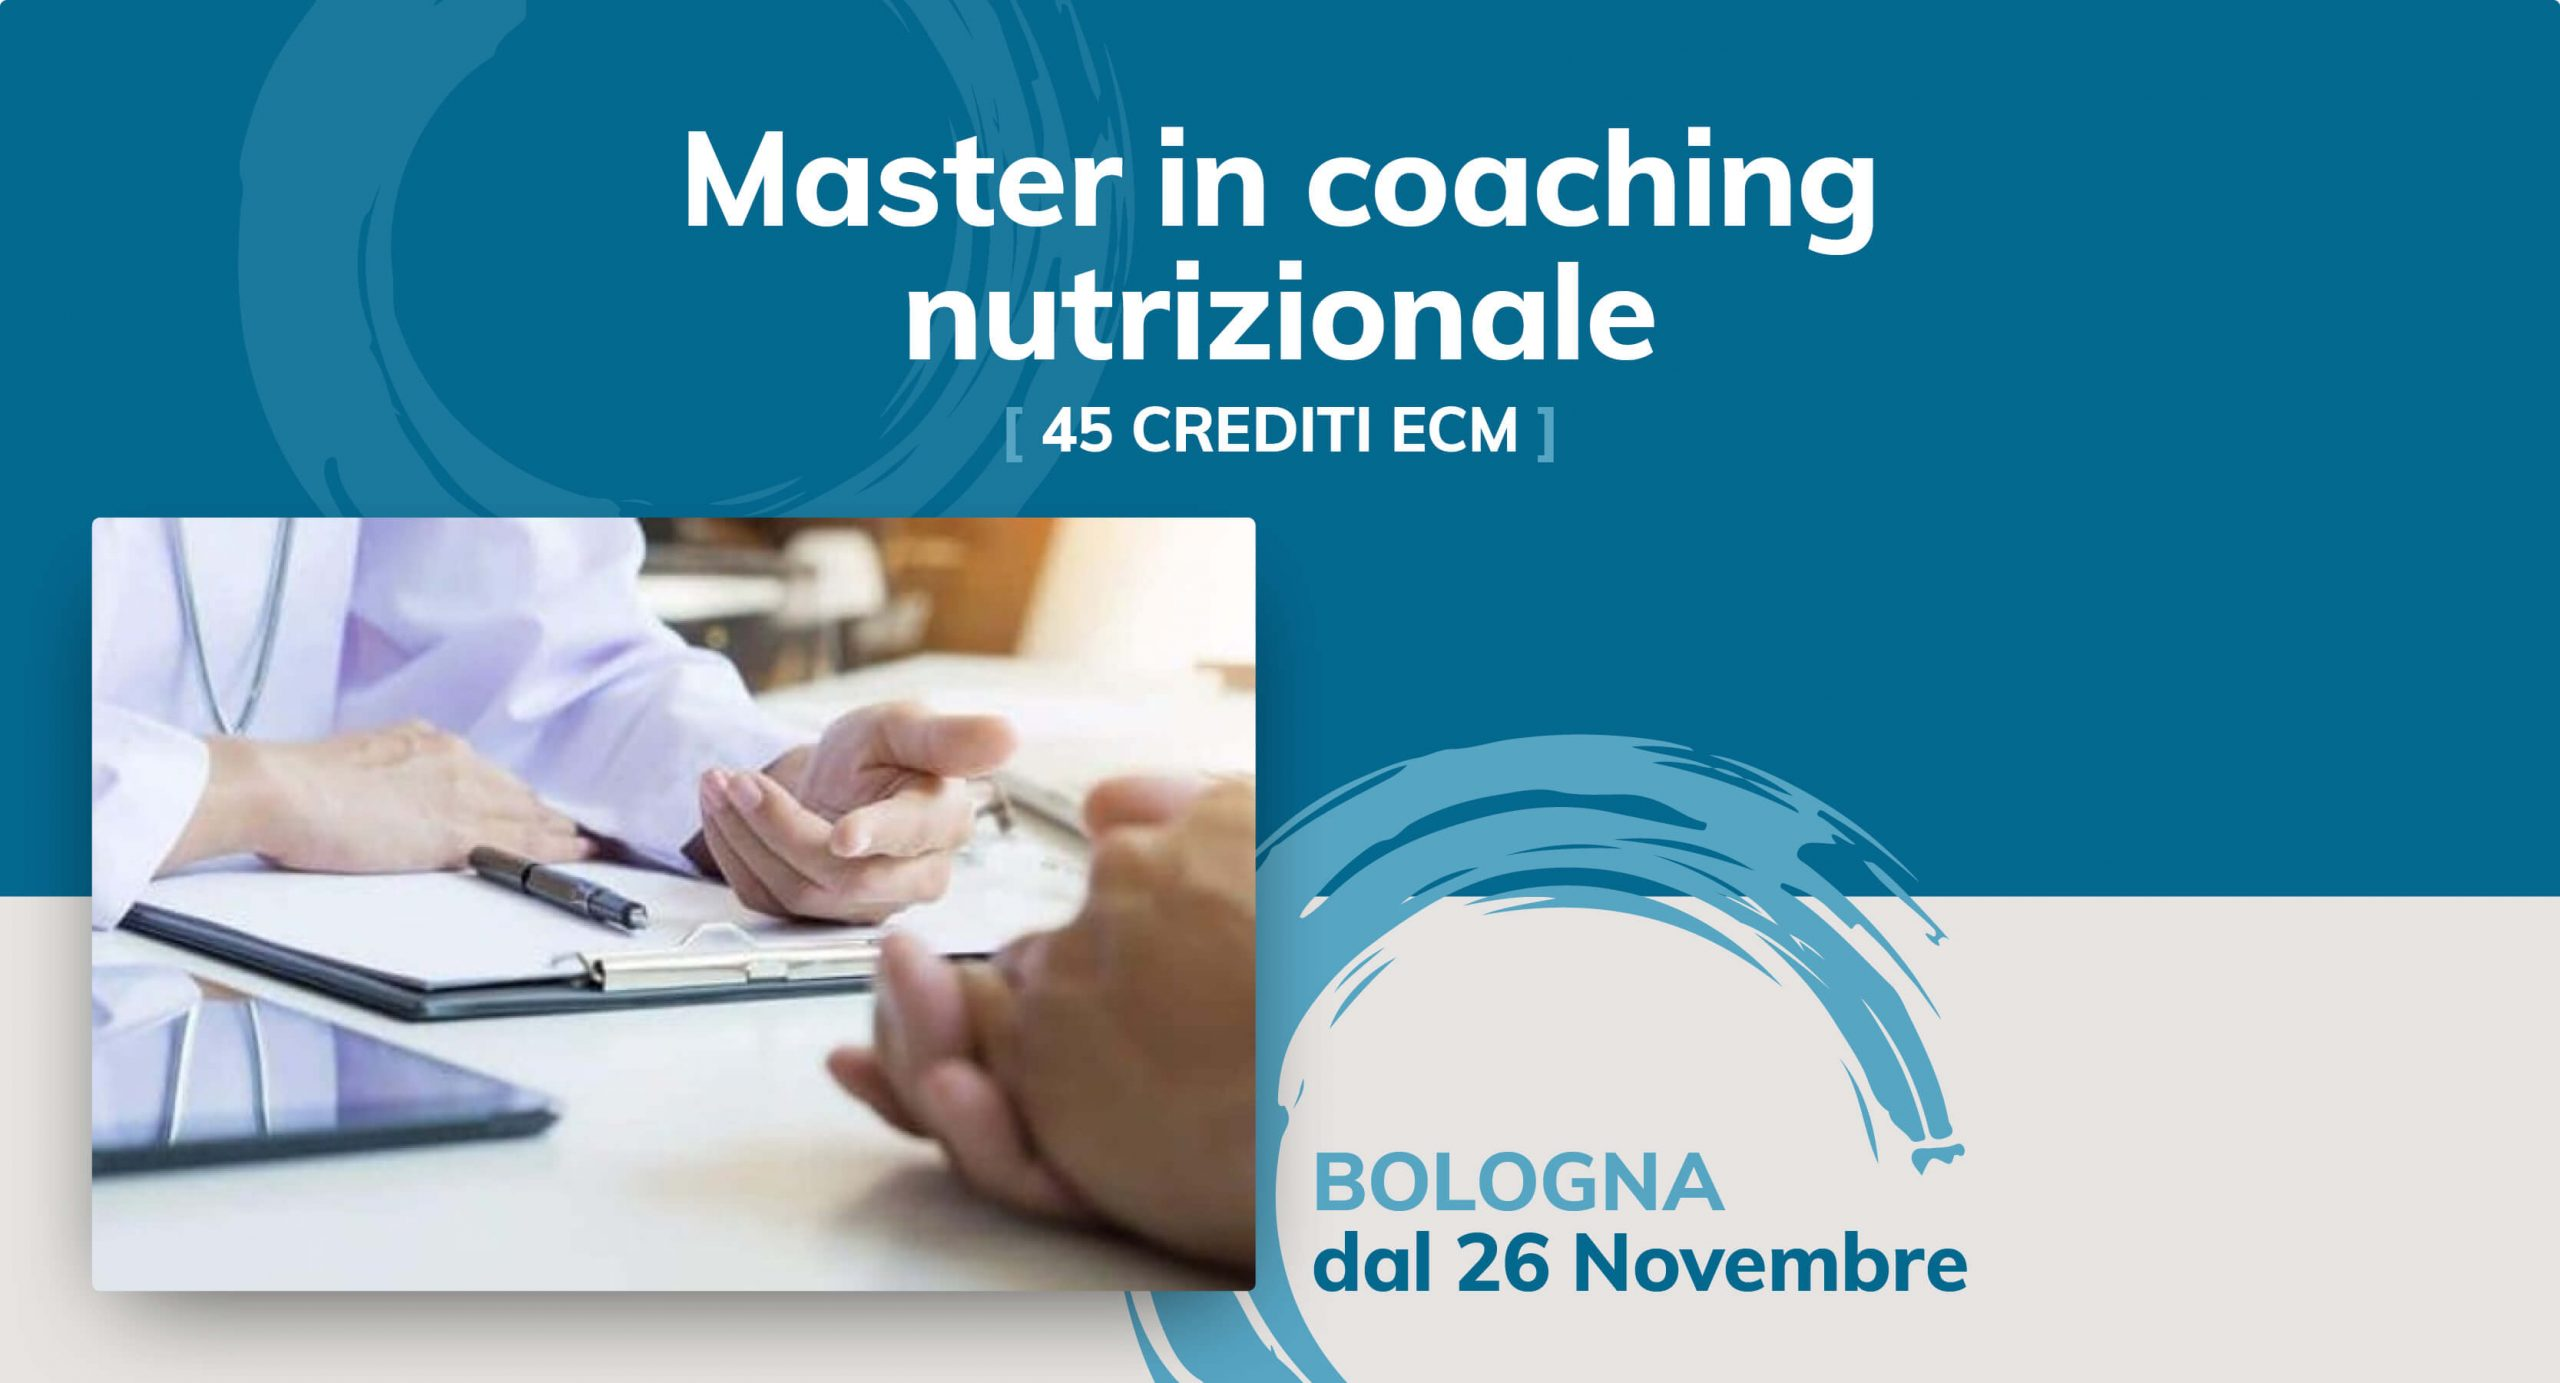 20-11-26 Master in coaching nutrizionale - Bologna